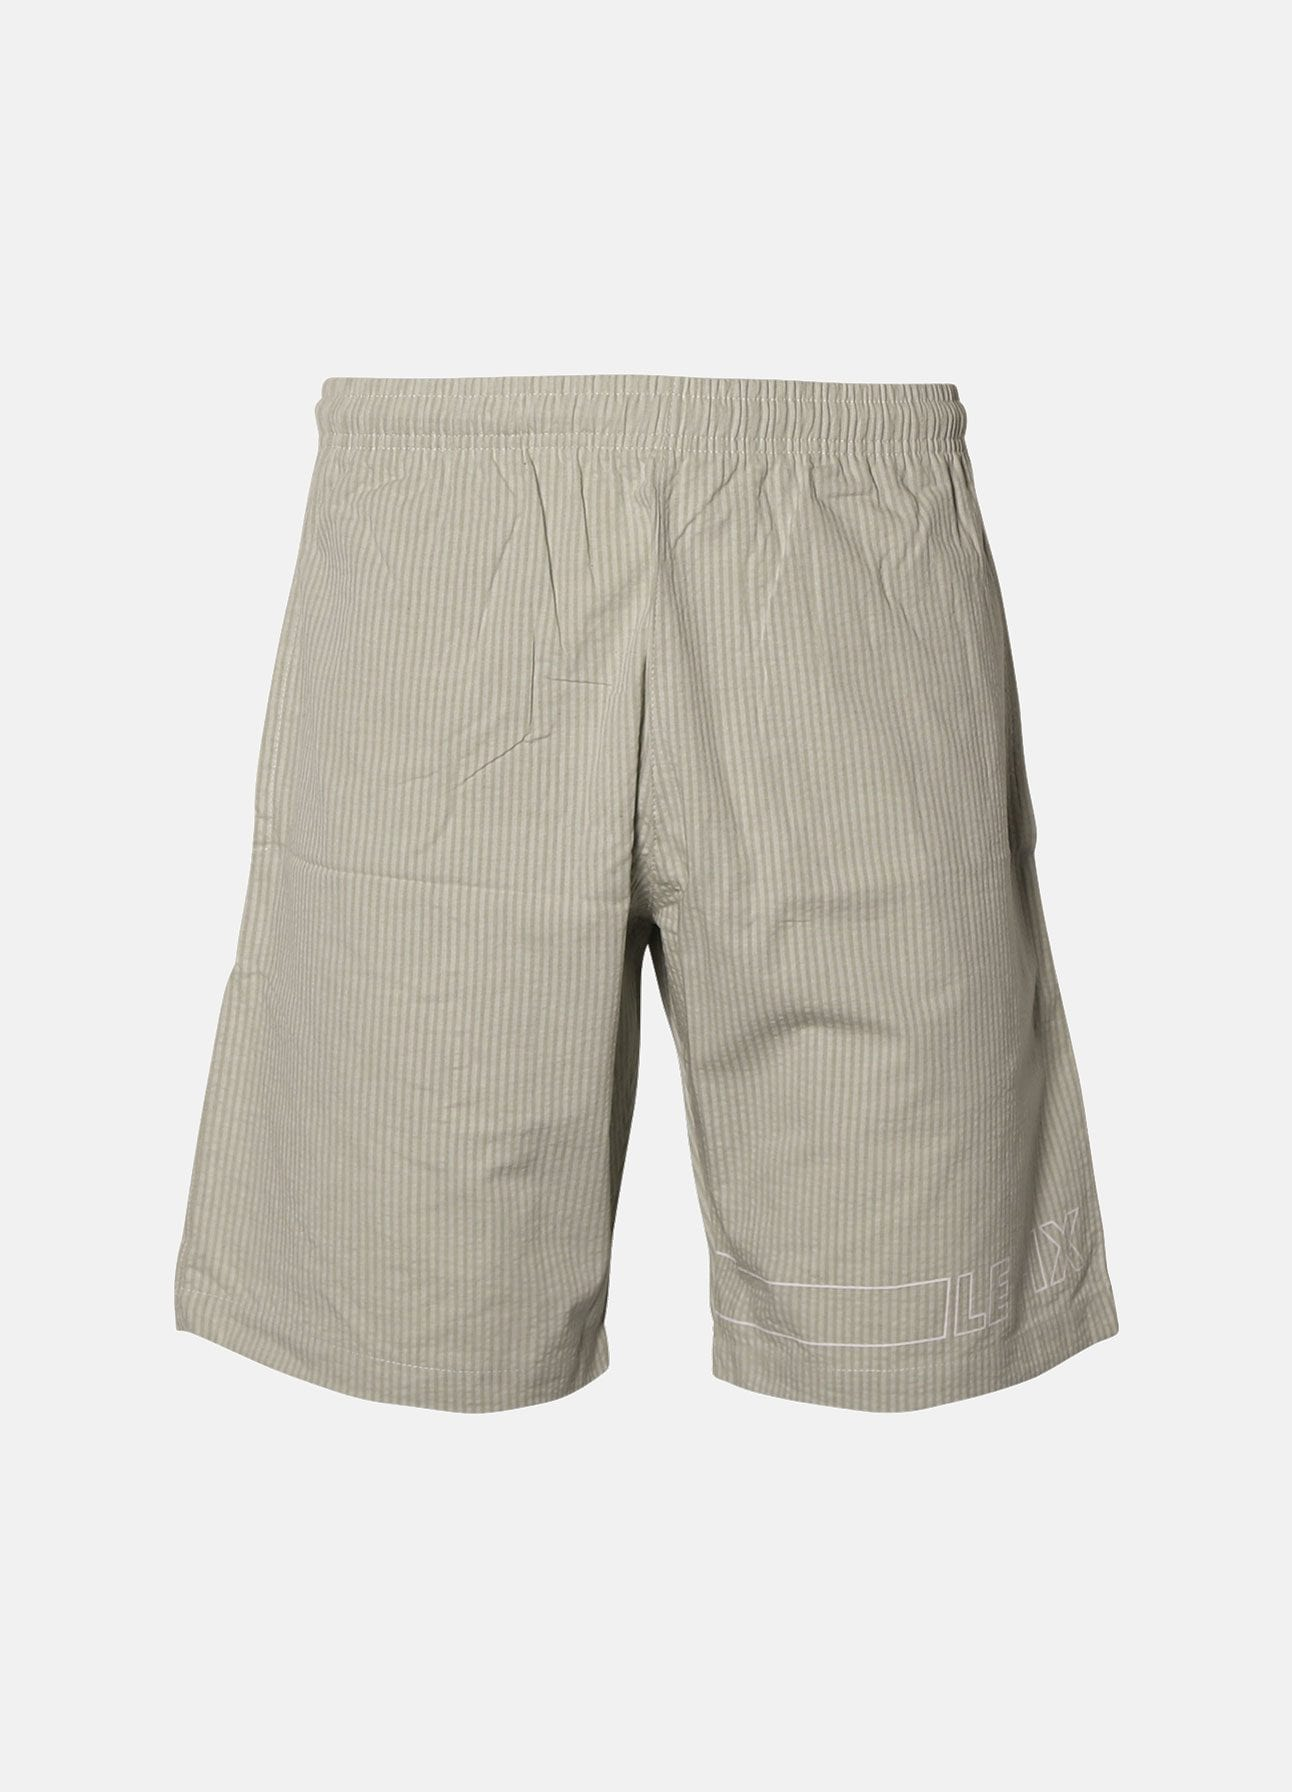 Dust-green Seersucker shorts fra Le Fix